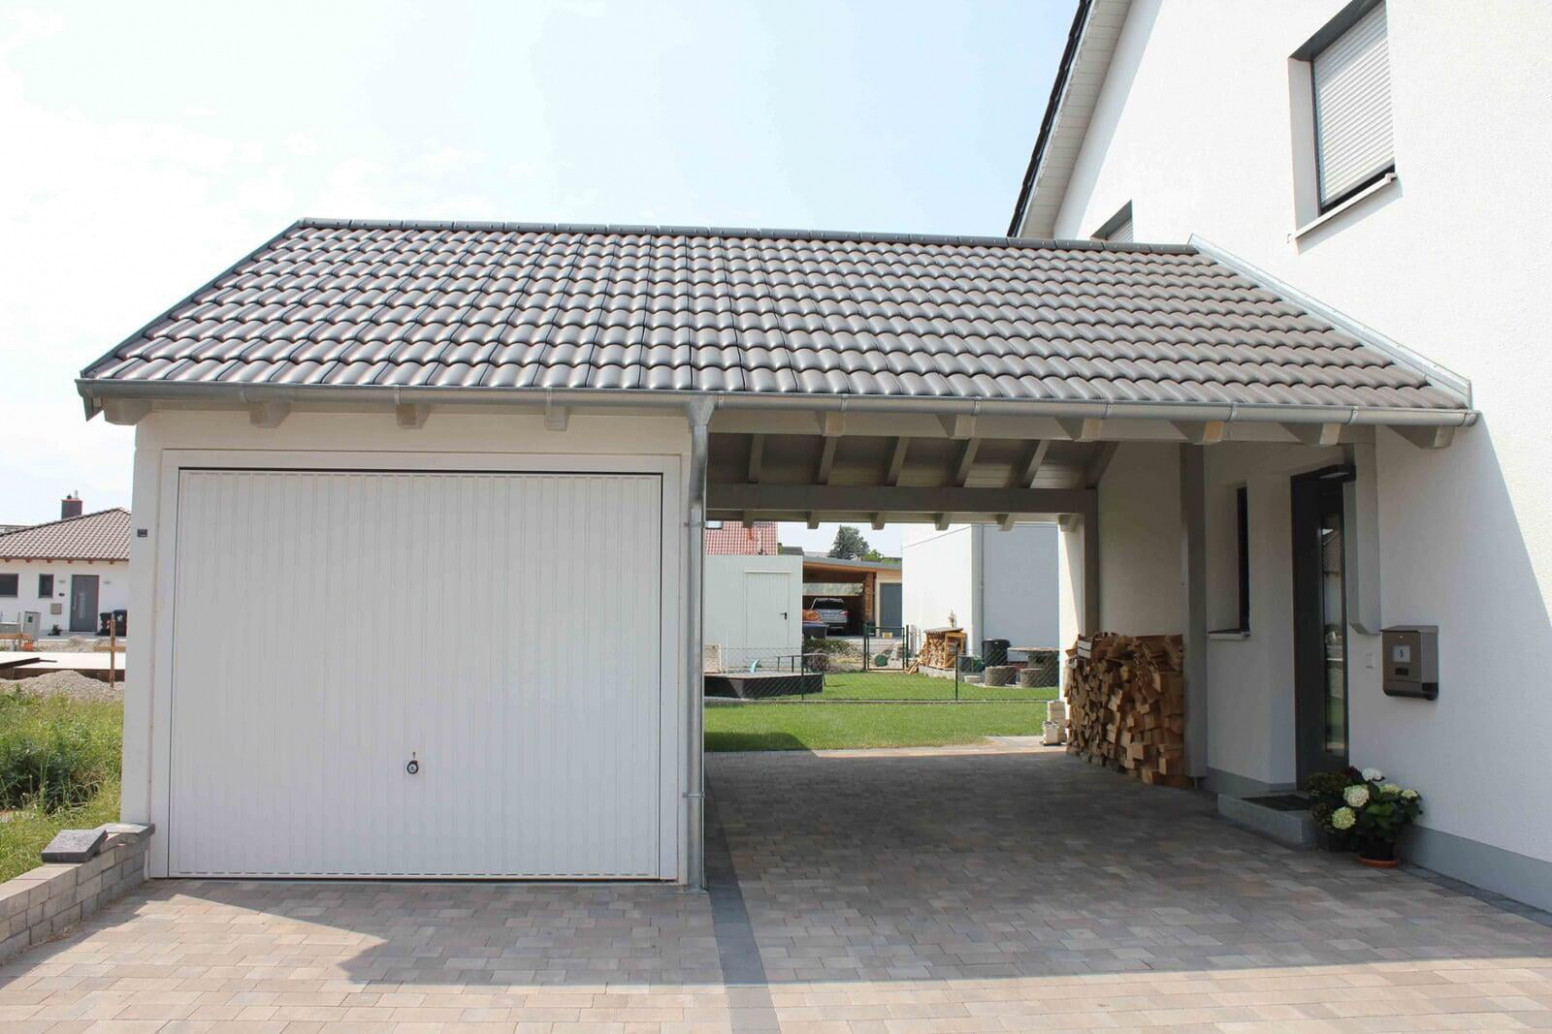 Carport Und Garage. Awesome Carport Und Garage With Carport ..